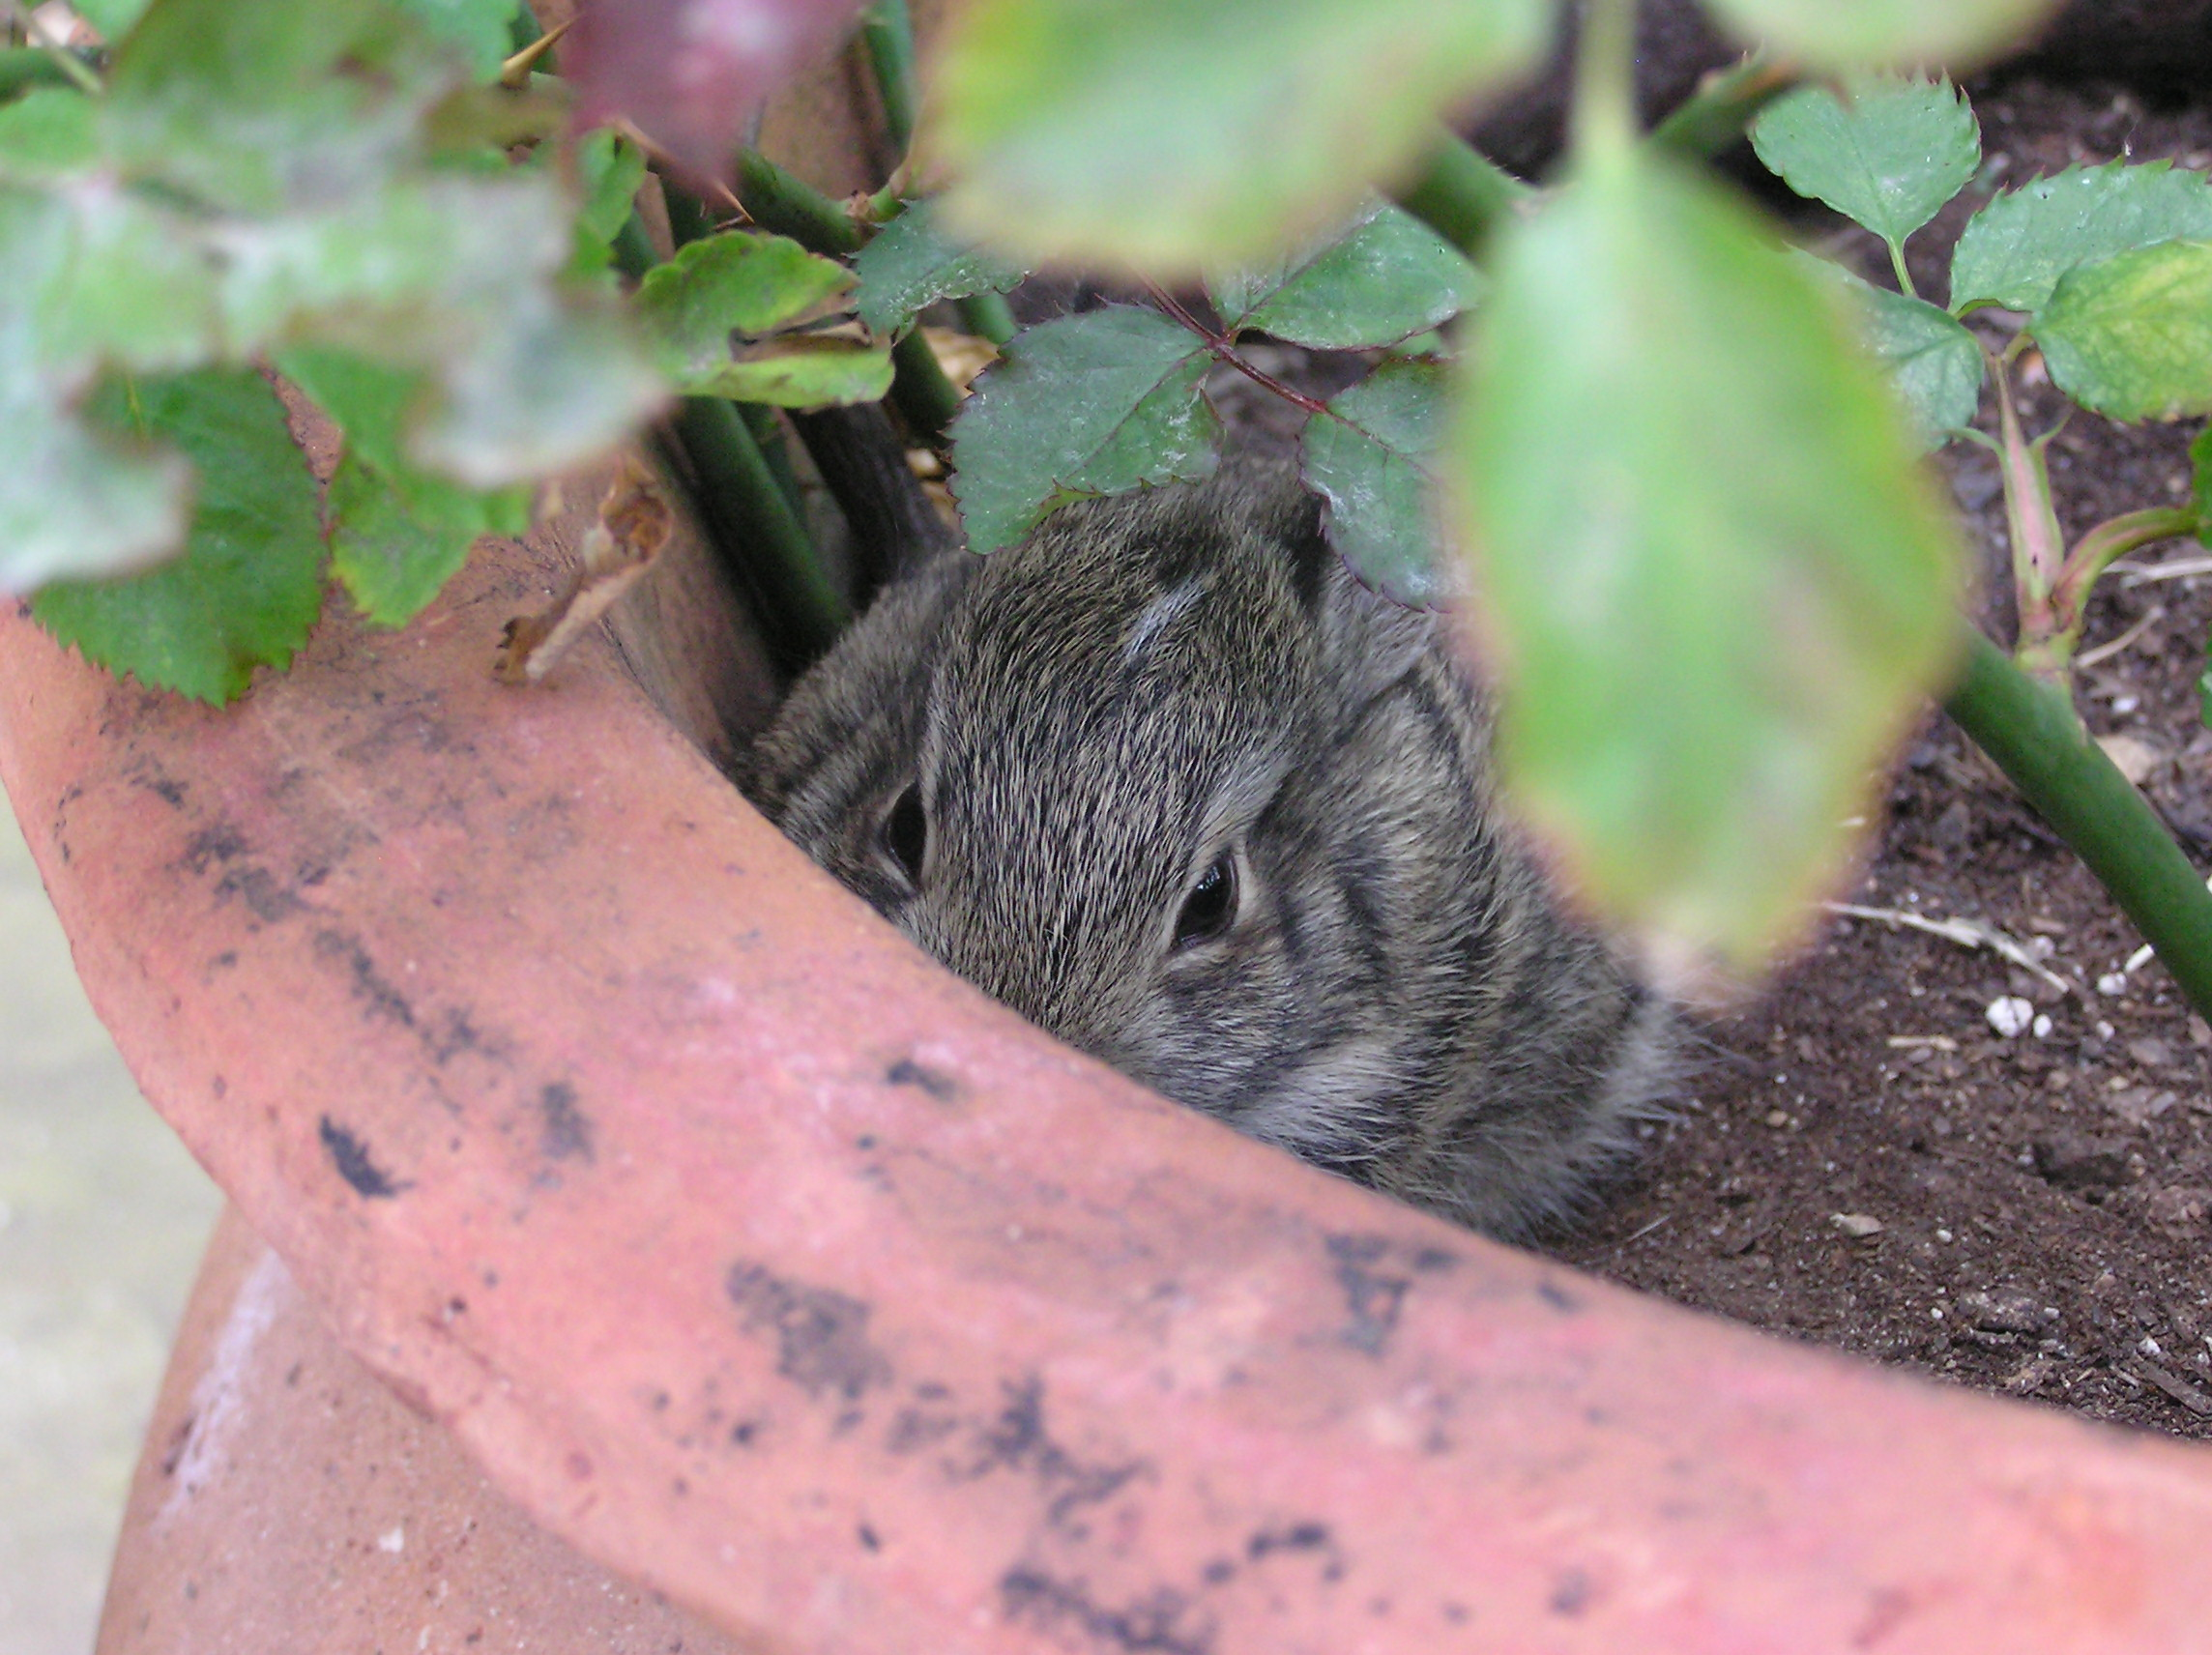 Bunny Has It Made in The Garden Shade of a Potted Rose